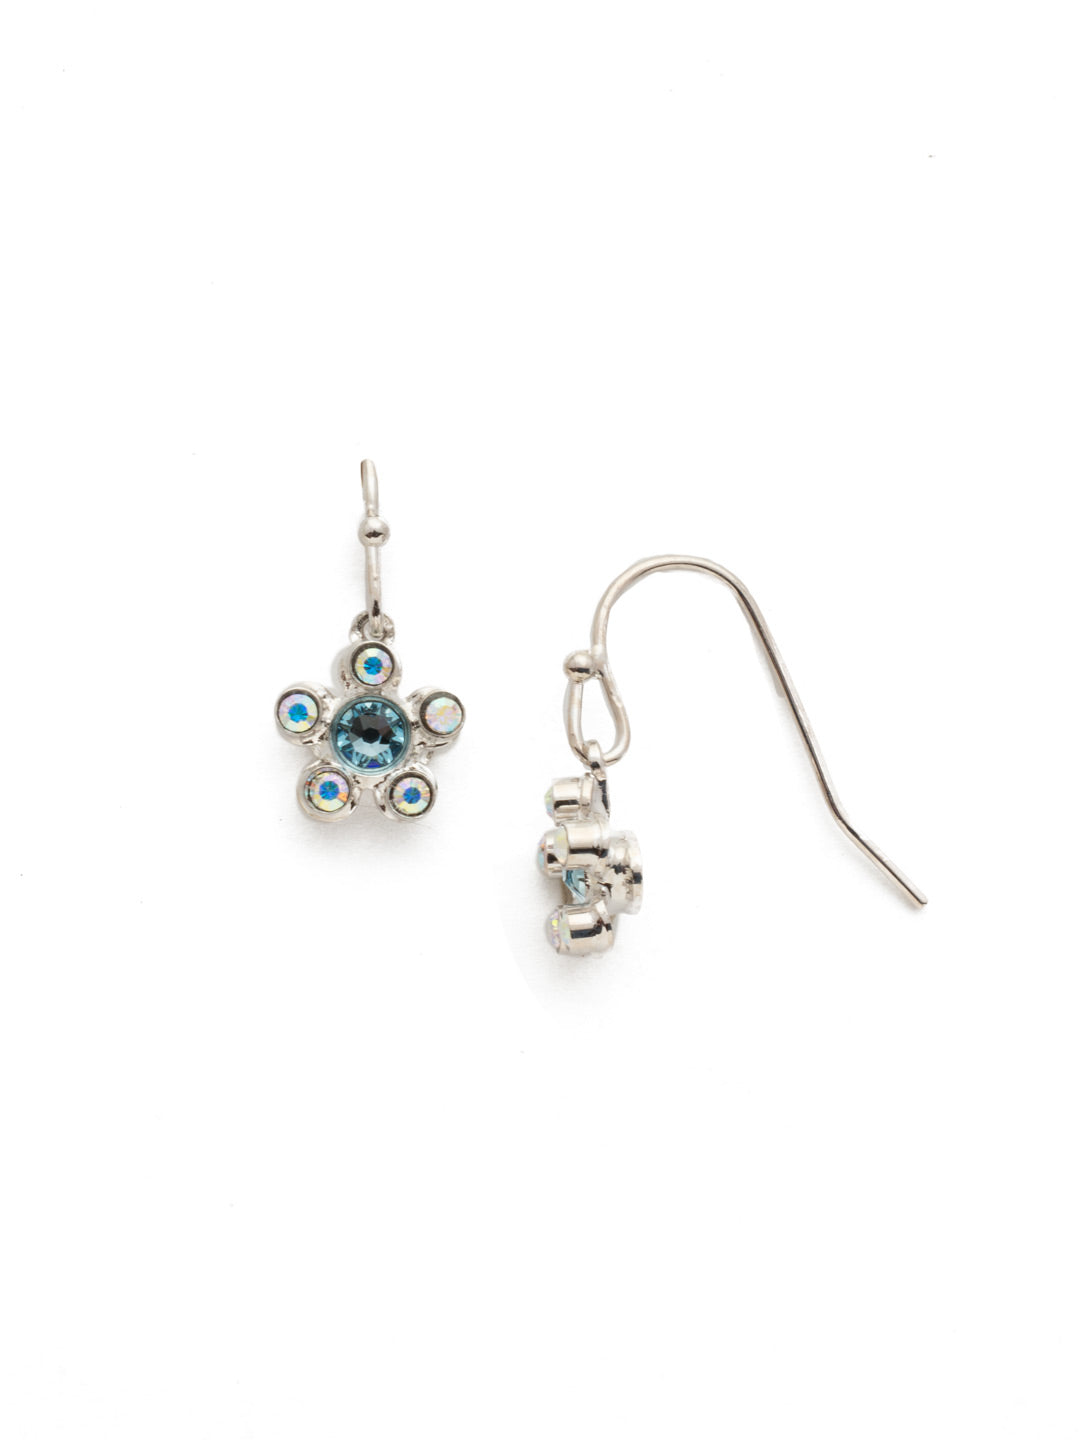 Lulu Dangle Earring - EEK10RHSSU